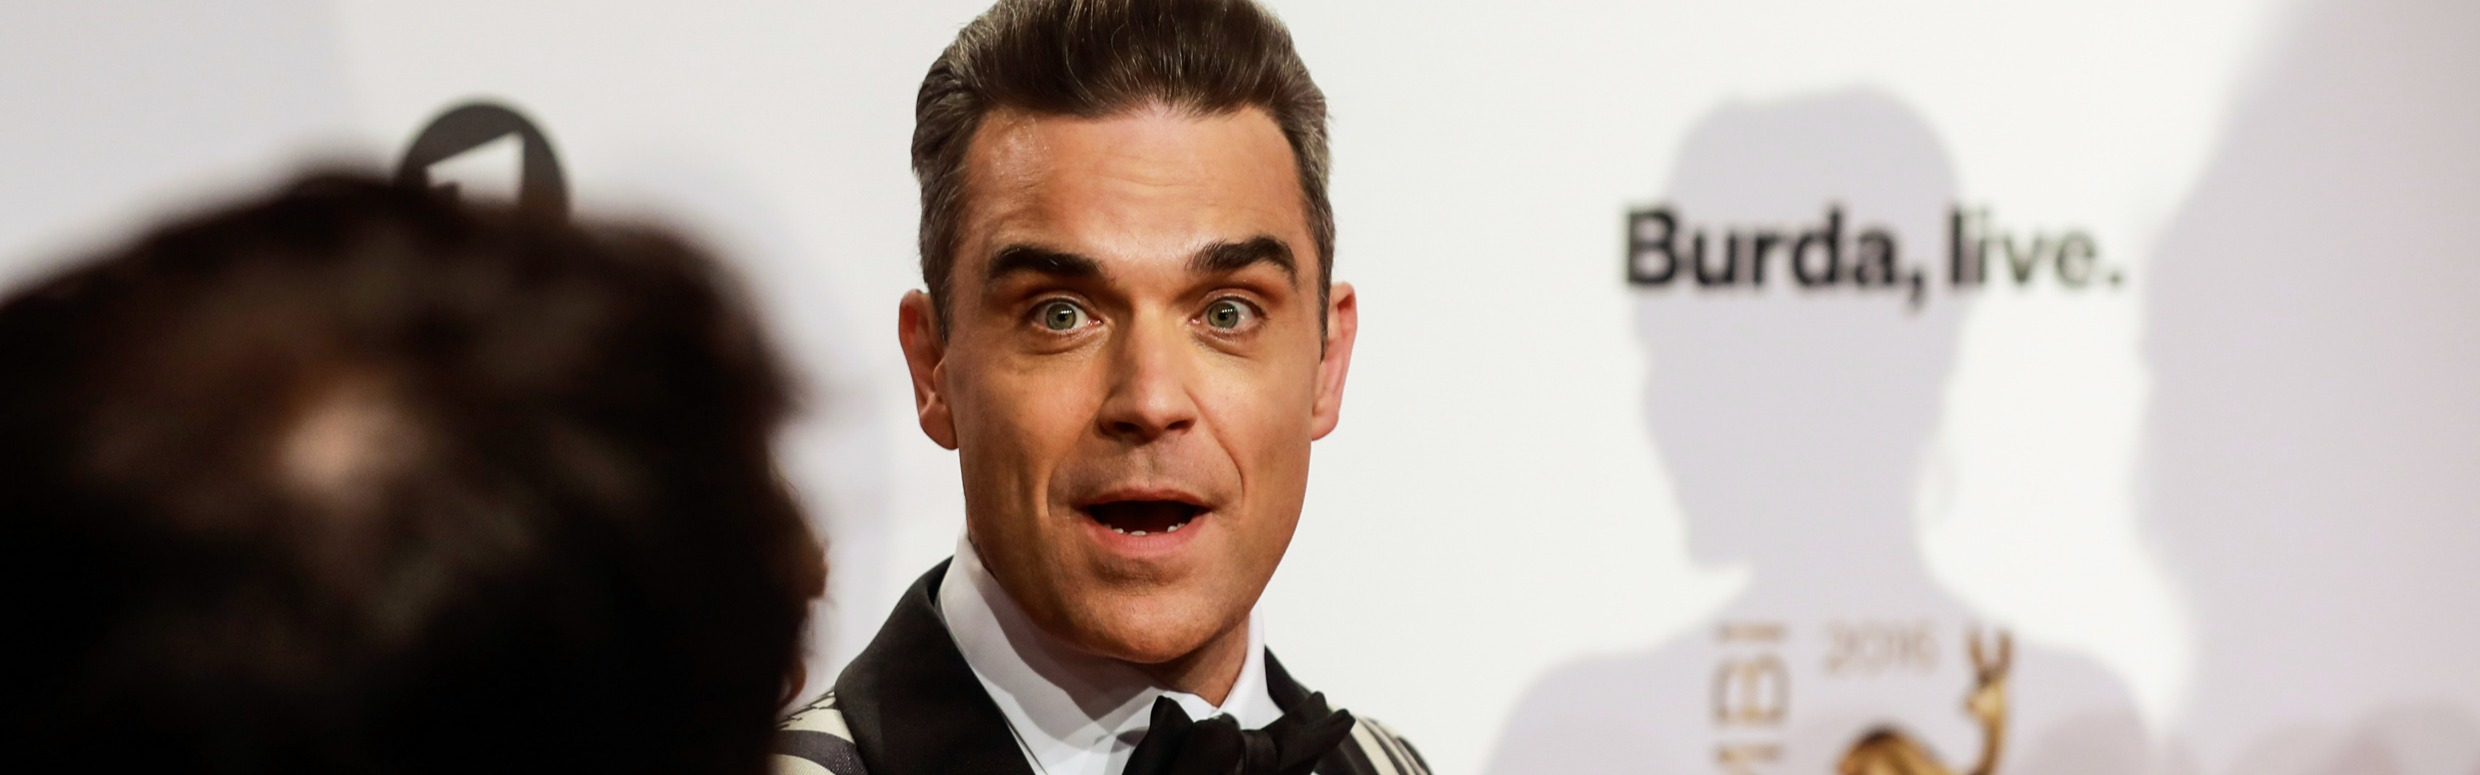 Robbie williams 2